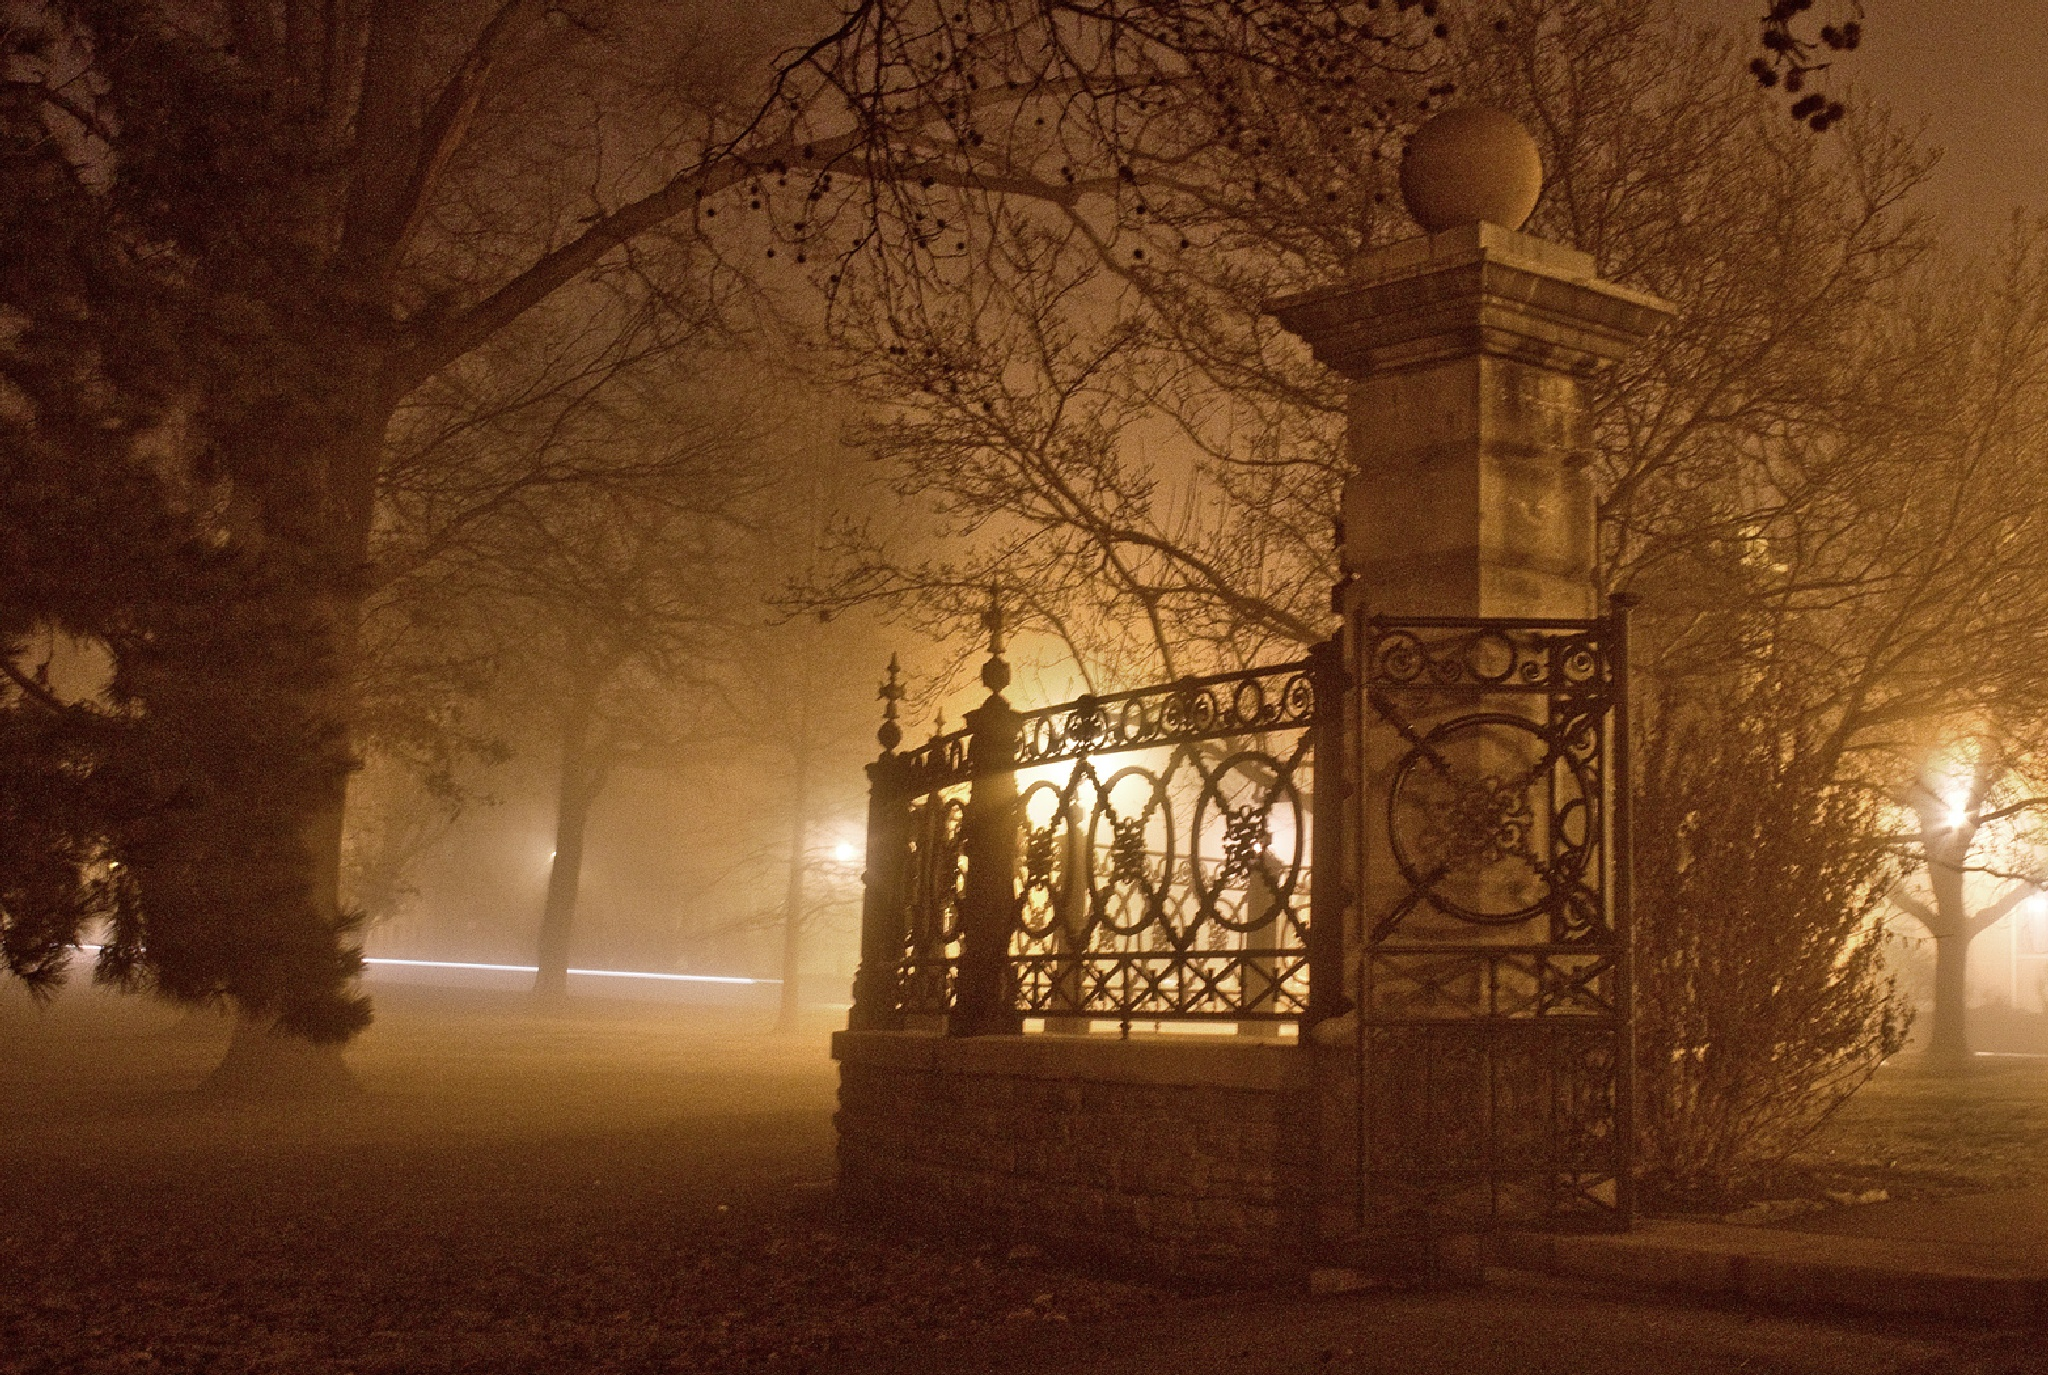 Foggy Morning in the Park by timothy.farmer.180